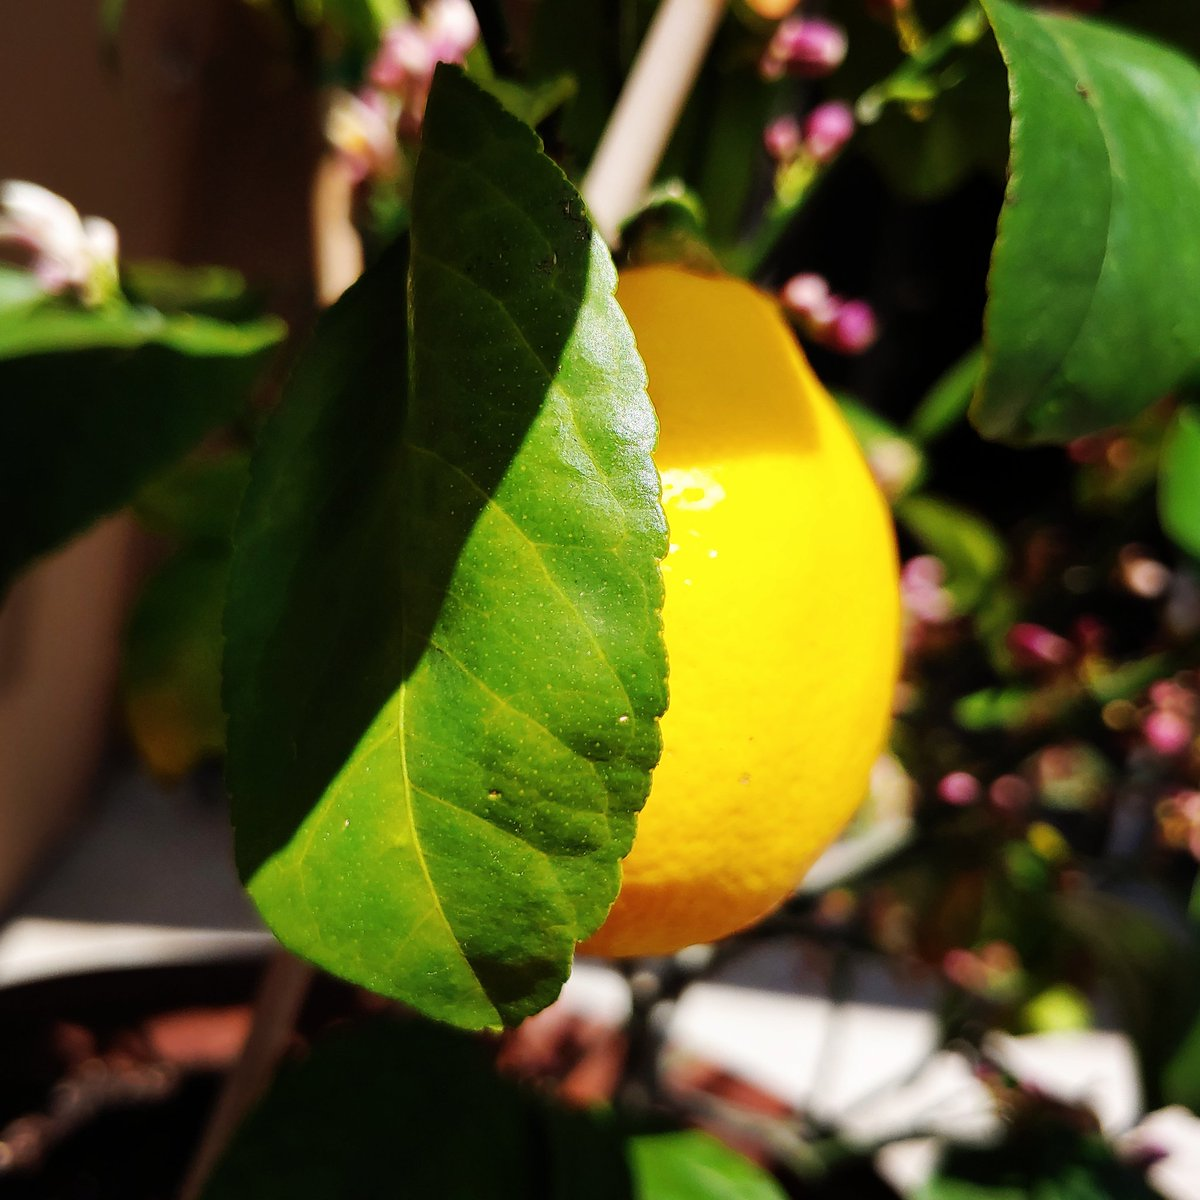 Happy Spring #2  #spring2020 #springisintheair #spring #springweather #plants #lemmontree #meyerlemon #lemonblossom #lemons #nature #beautifulpic.twitter.com/g16uJM4Nwu